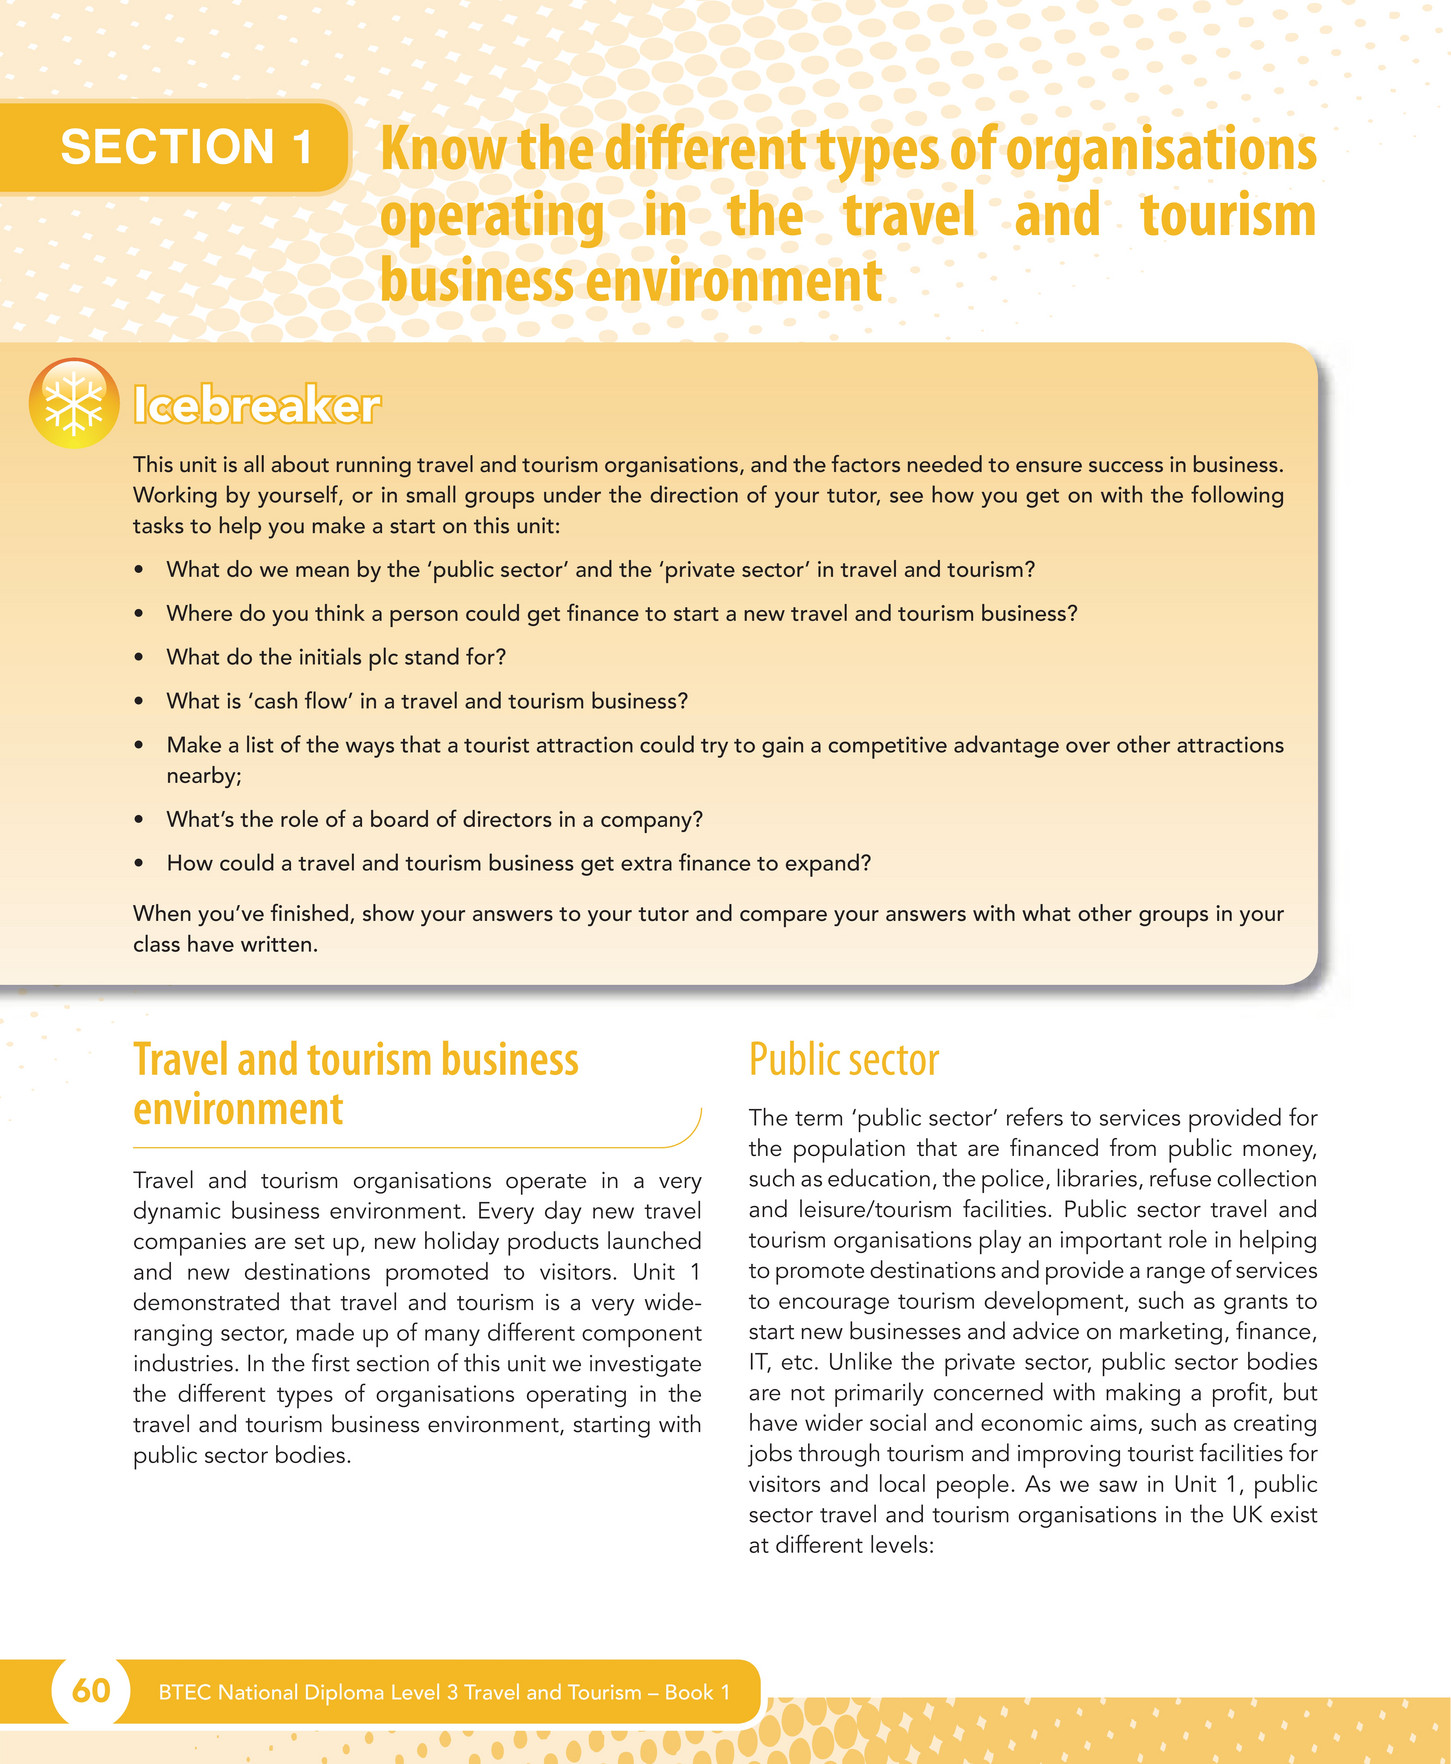 travel and tourism unit 1 m1 These are the units we have chosen to deliver: unit 1: the uk travel and tourism sector (external examination) unit 2: uk travel and tourism destinations unit 3: development of travel and tourism in the uk unit 4: international travel and tourism destinations unit 5: factors affecting worldwide travel and tourism.